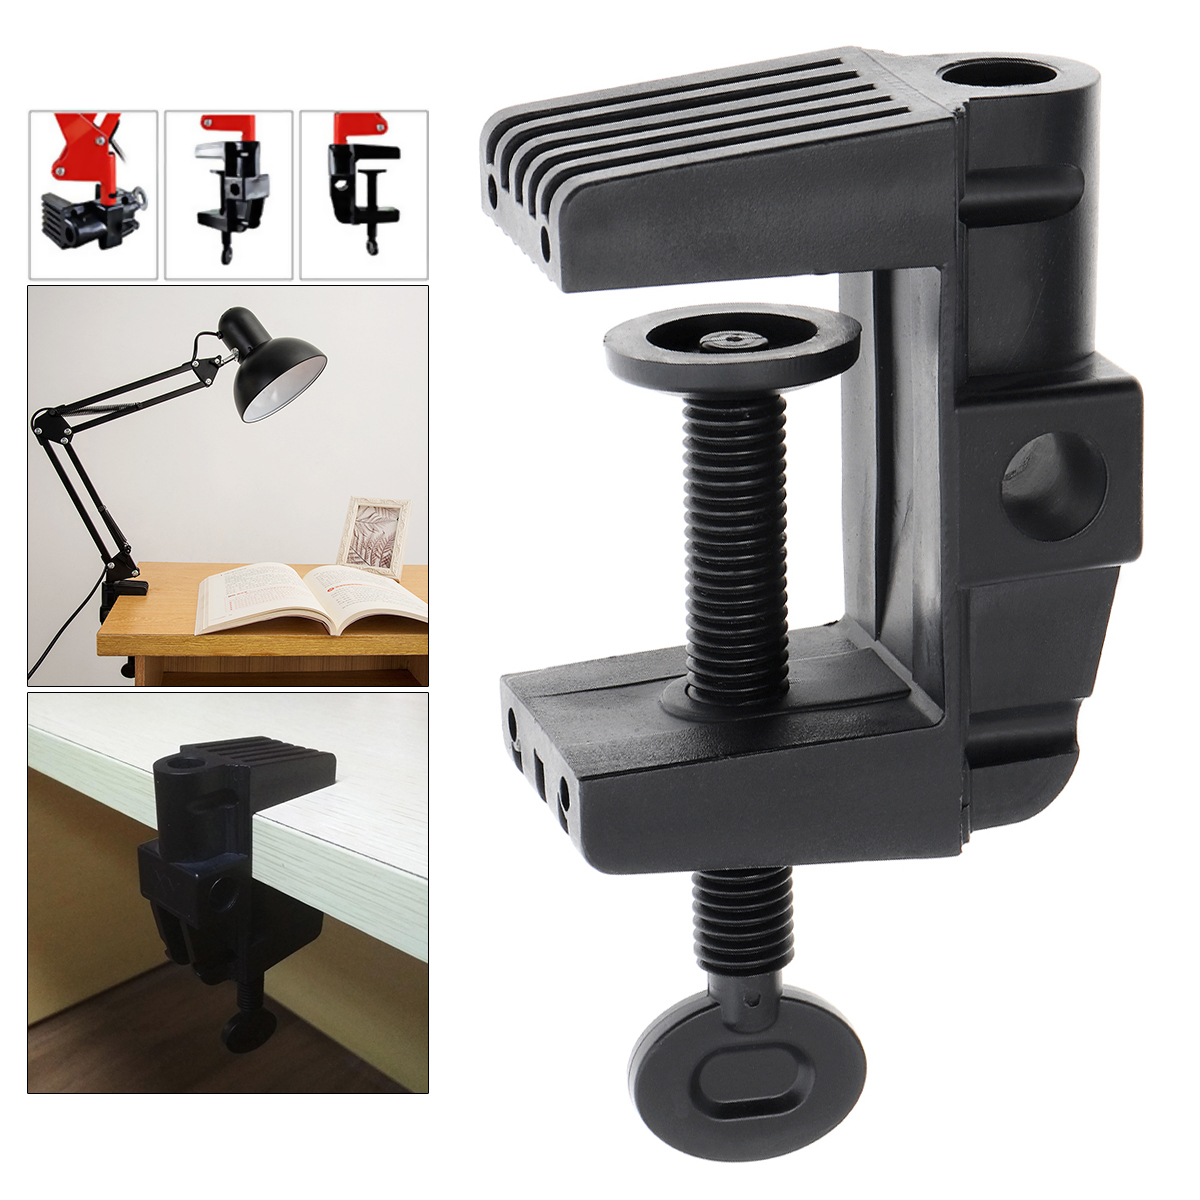 Bracket Clamp Accessories DIY Fixed Metal Clip Fittings Screw Light Mounting Camera Holder For Broadcast Microphone Desk Lamp